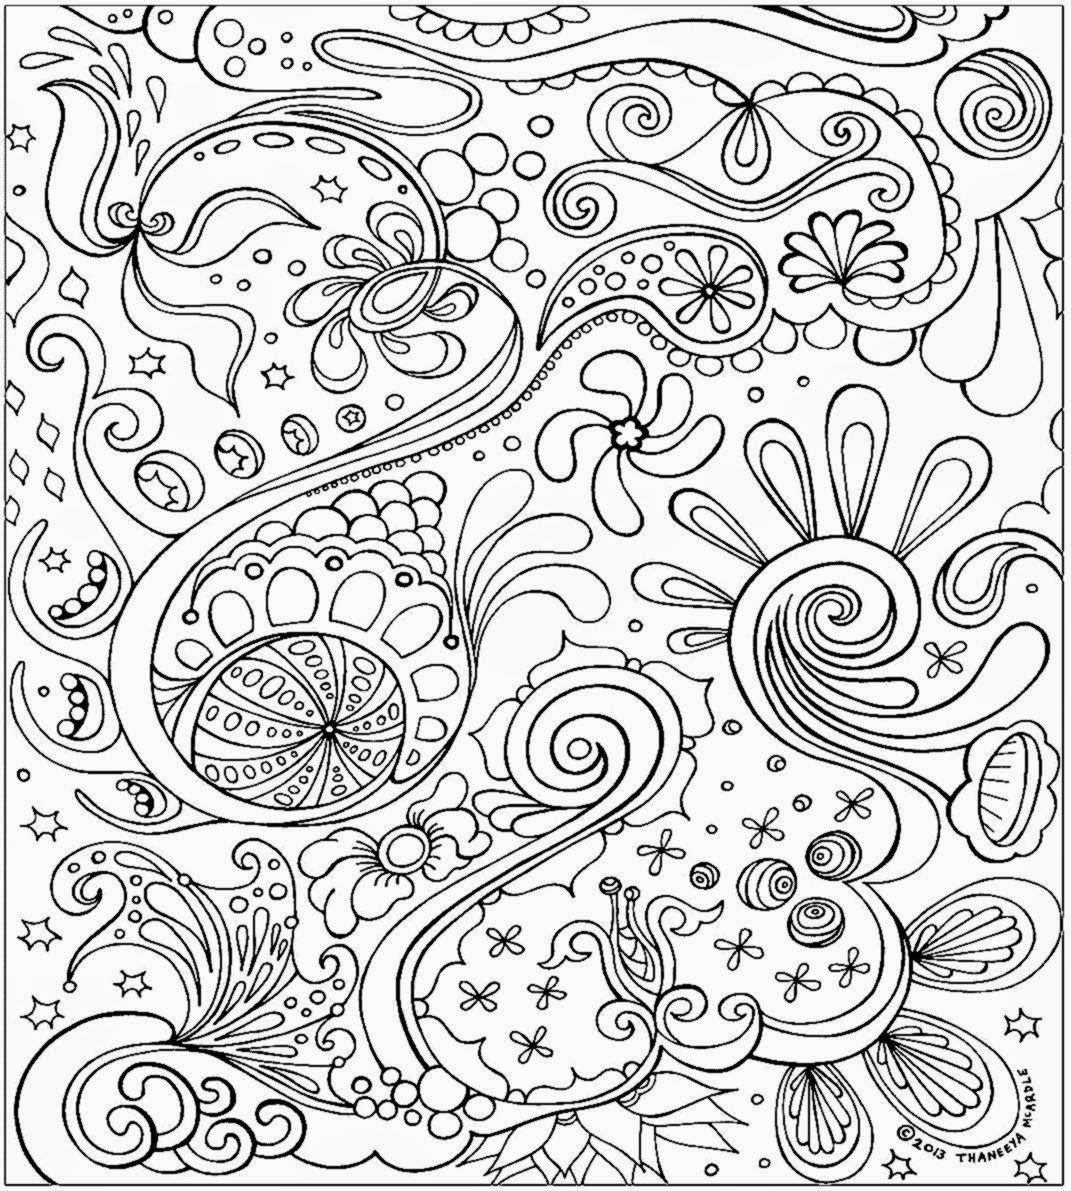 1071x1191 Shocking Stress Coloring Pages To And Print For Pic Relief Adults